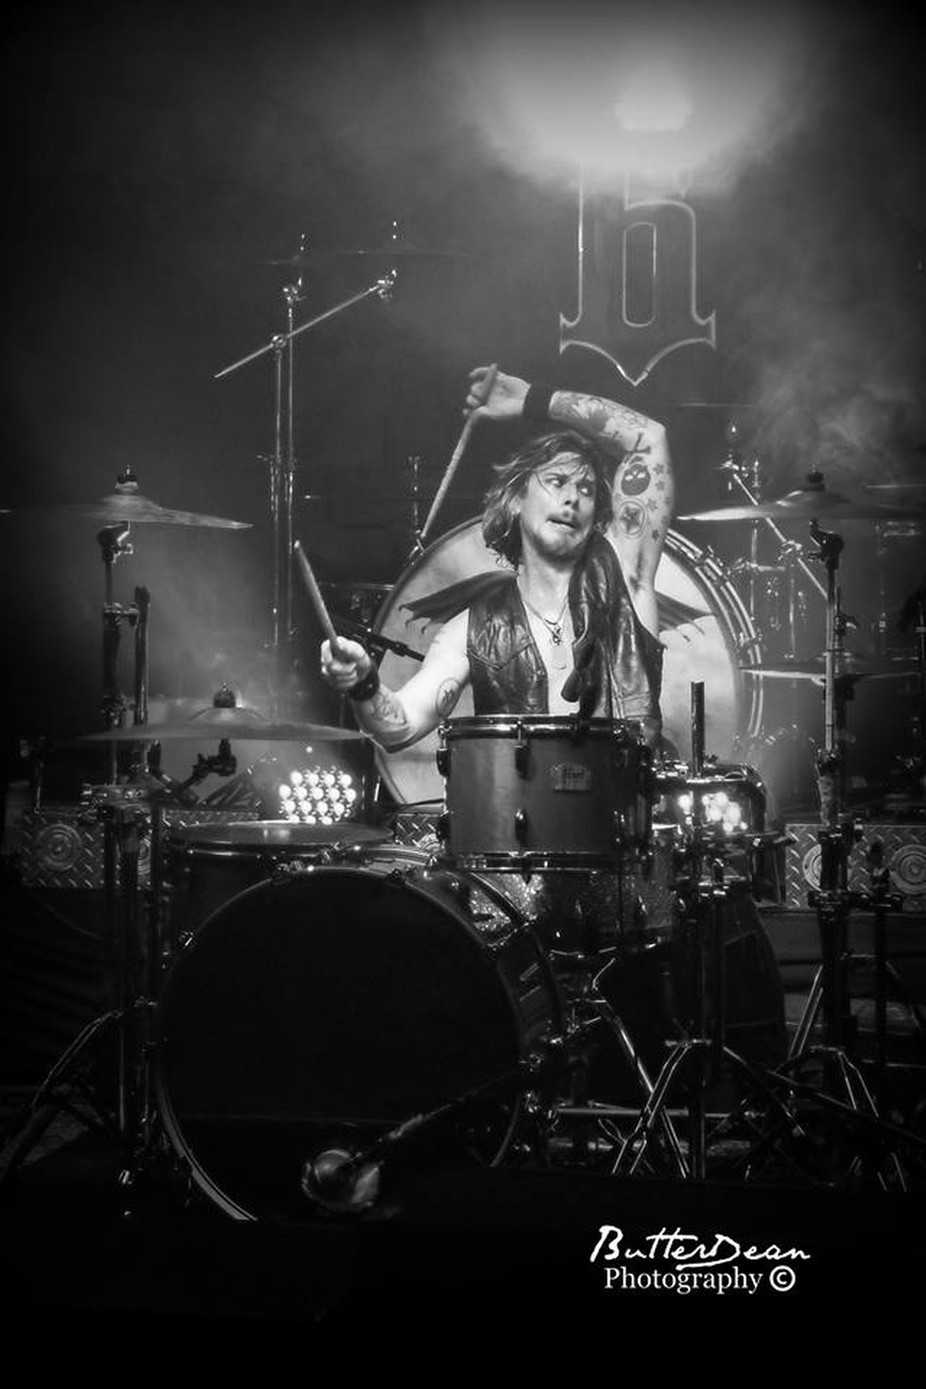 ZACH ATTACK by ButterDean - Music And Concerts Photo Contest